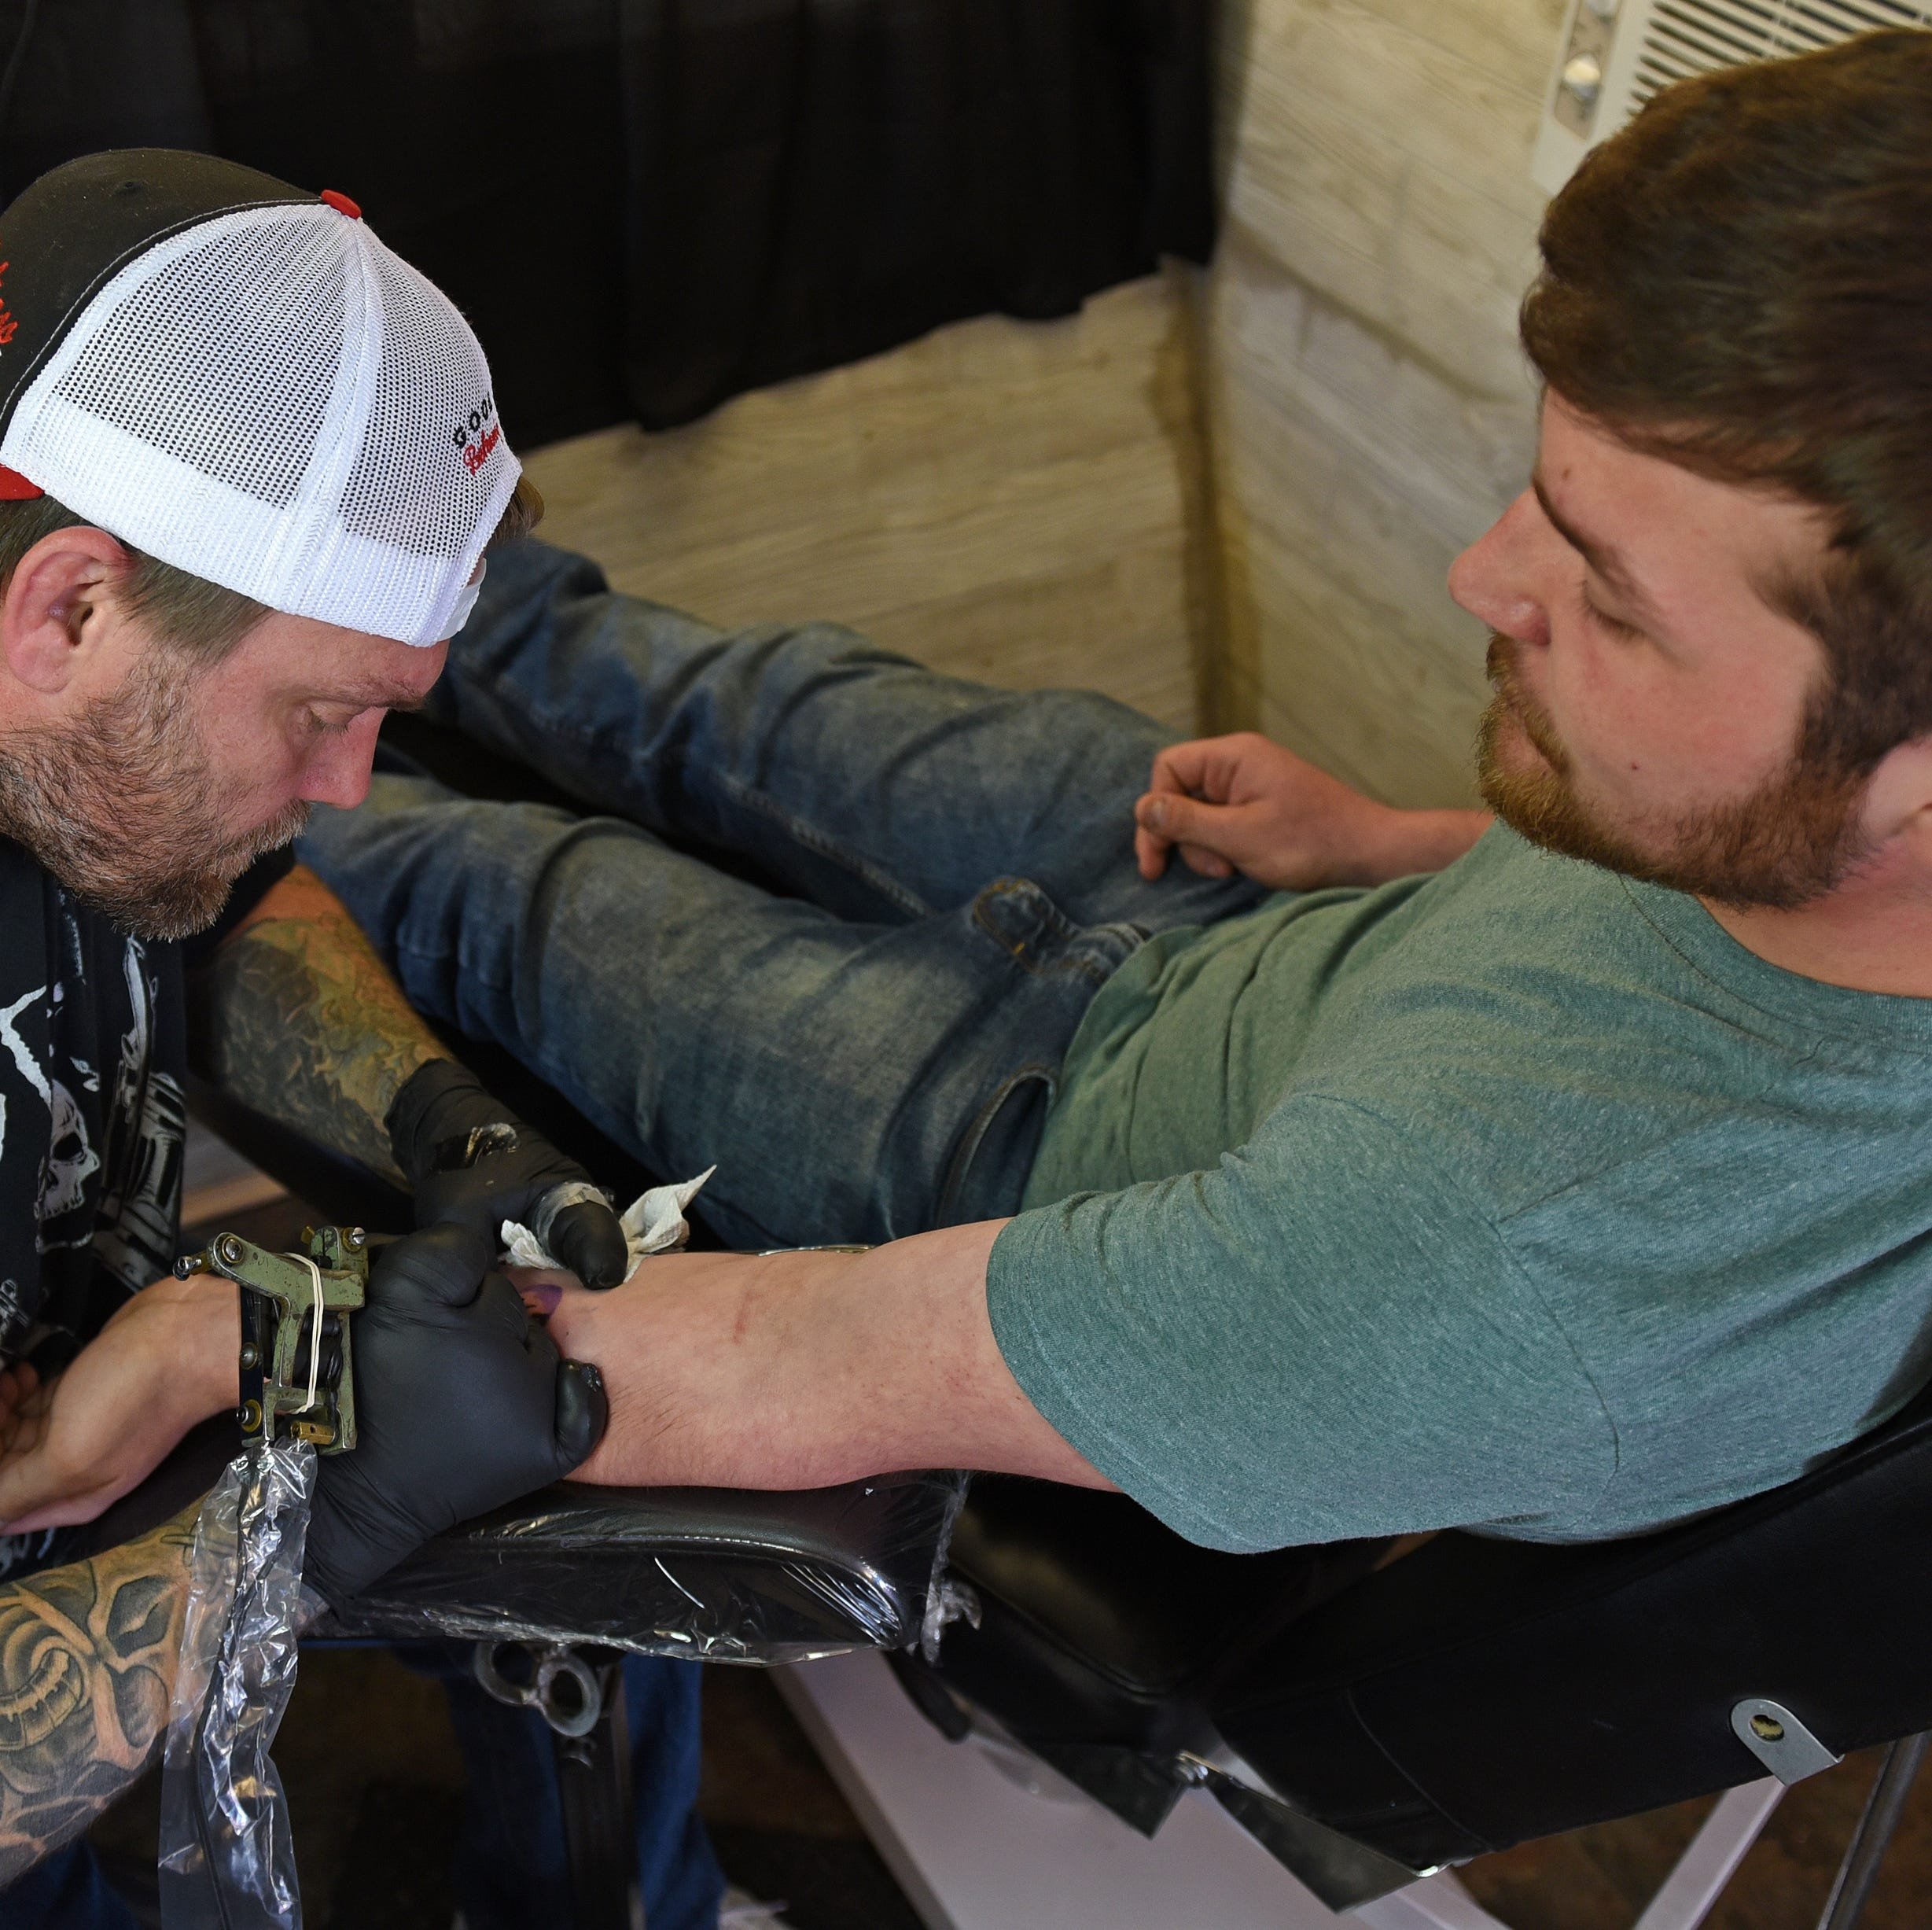 Would you get a pizza shop's logo tattooed for free food? These Des Moines residents did.